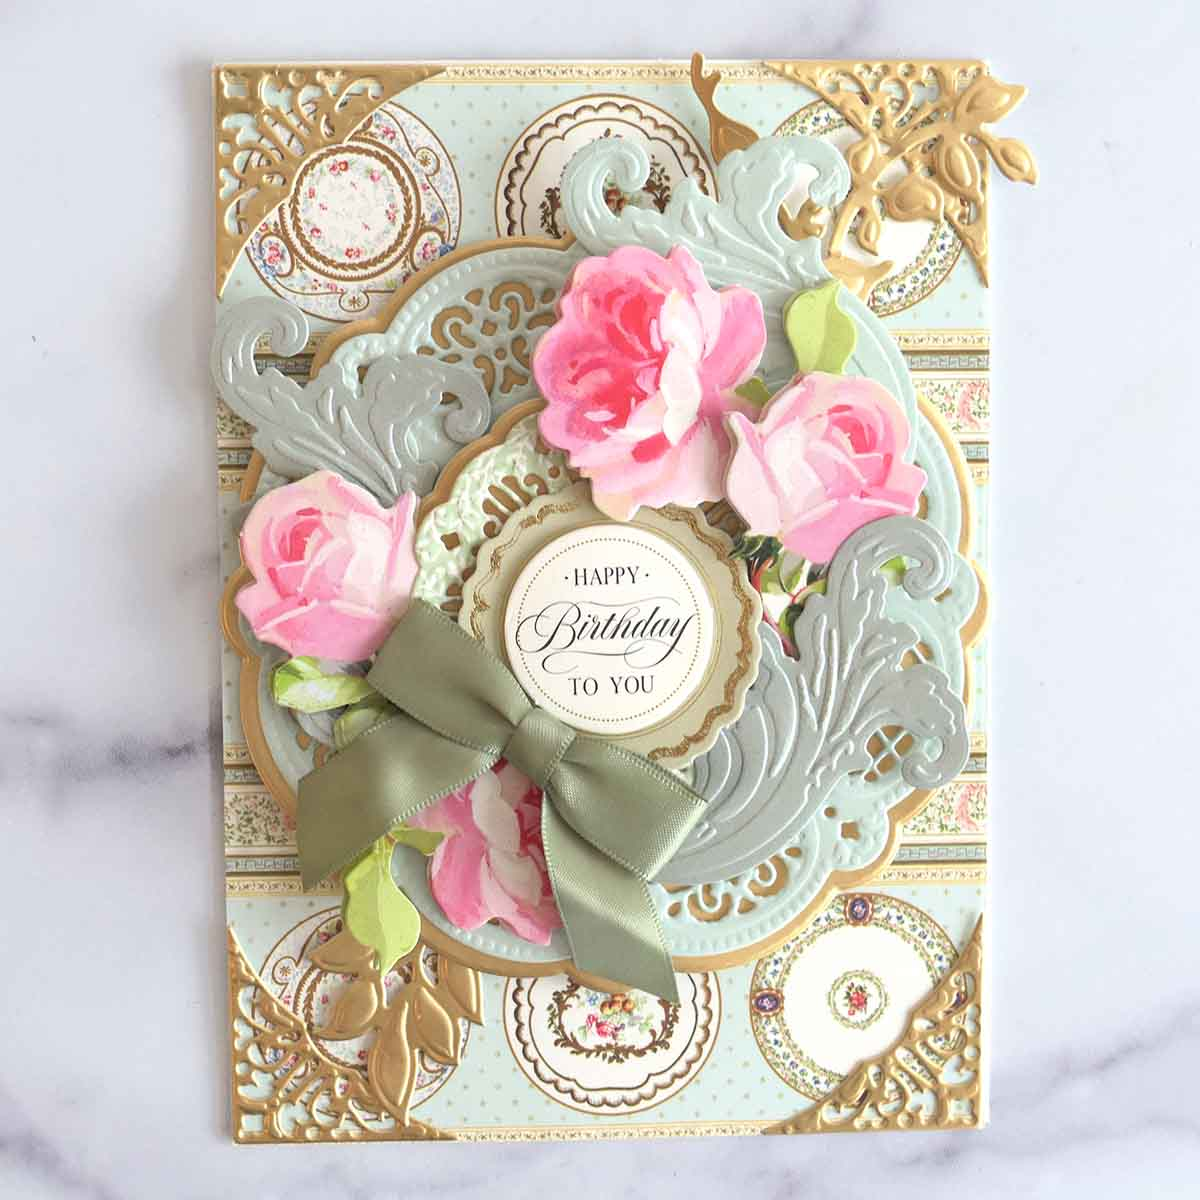 The Happy Birthday to You sentiment and a sage green bow was added to the card to finish it.